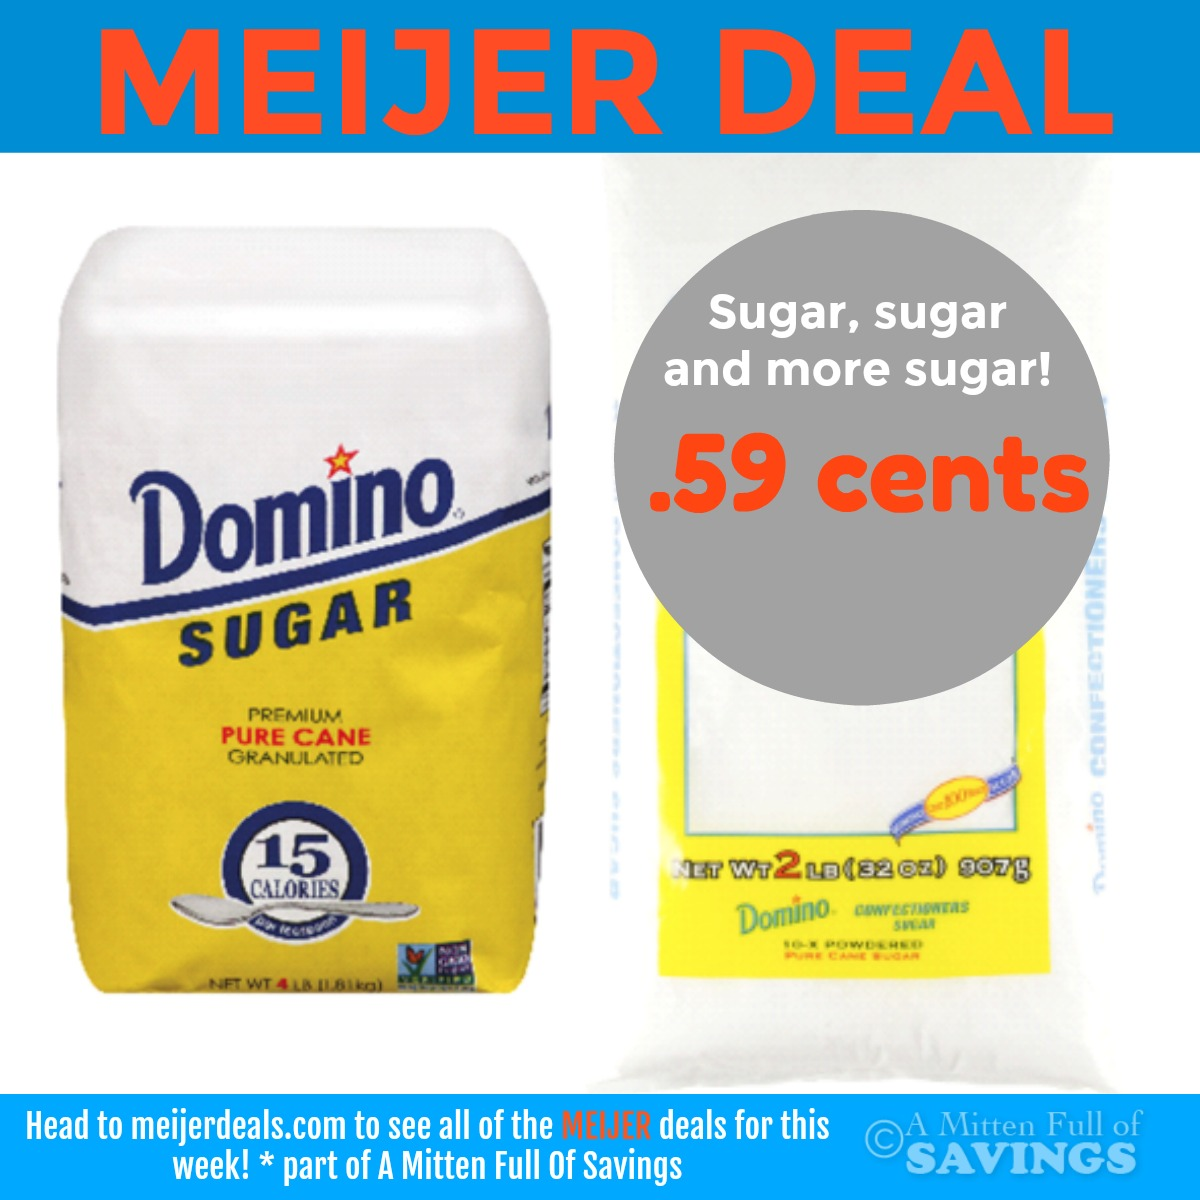 The best deals on Domino sugar are most often found at grocery stores and Walgreens. Look for Domino sugar coupon values ranging from $/2-$/1.